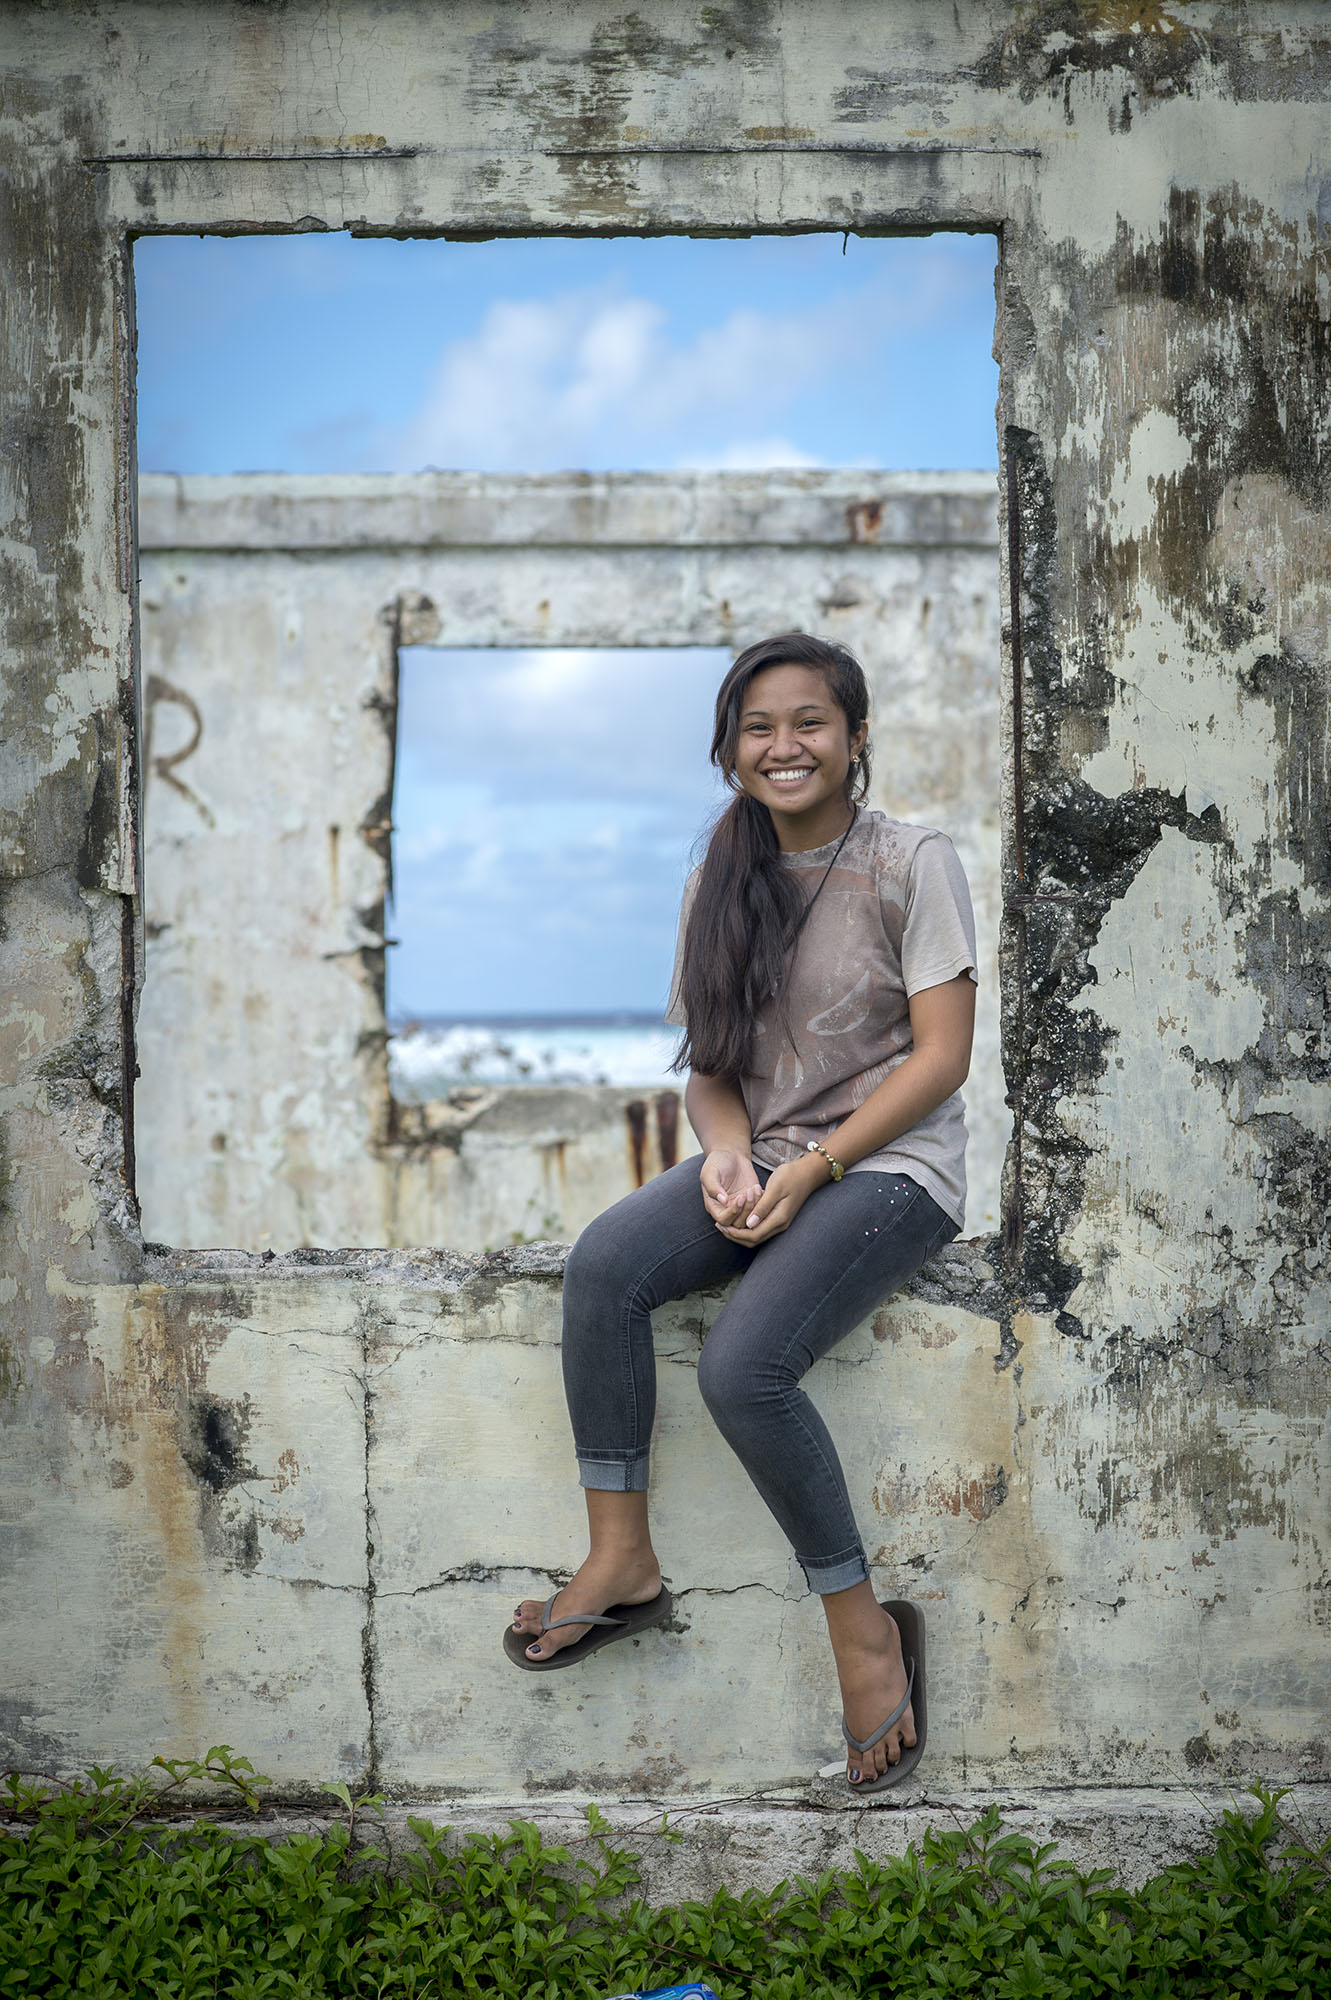 <p>Empty homes and abandoned structures are a familiar sight in much of Micronesia.</p>